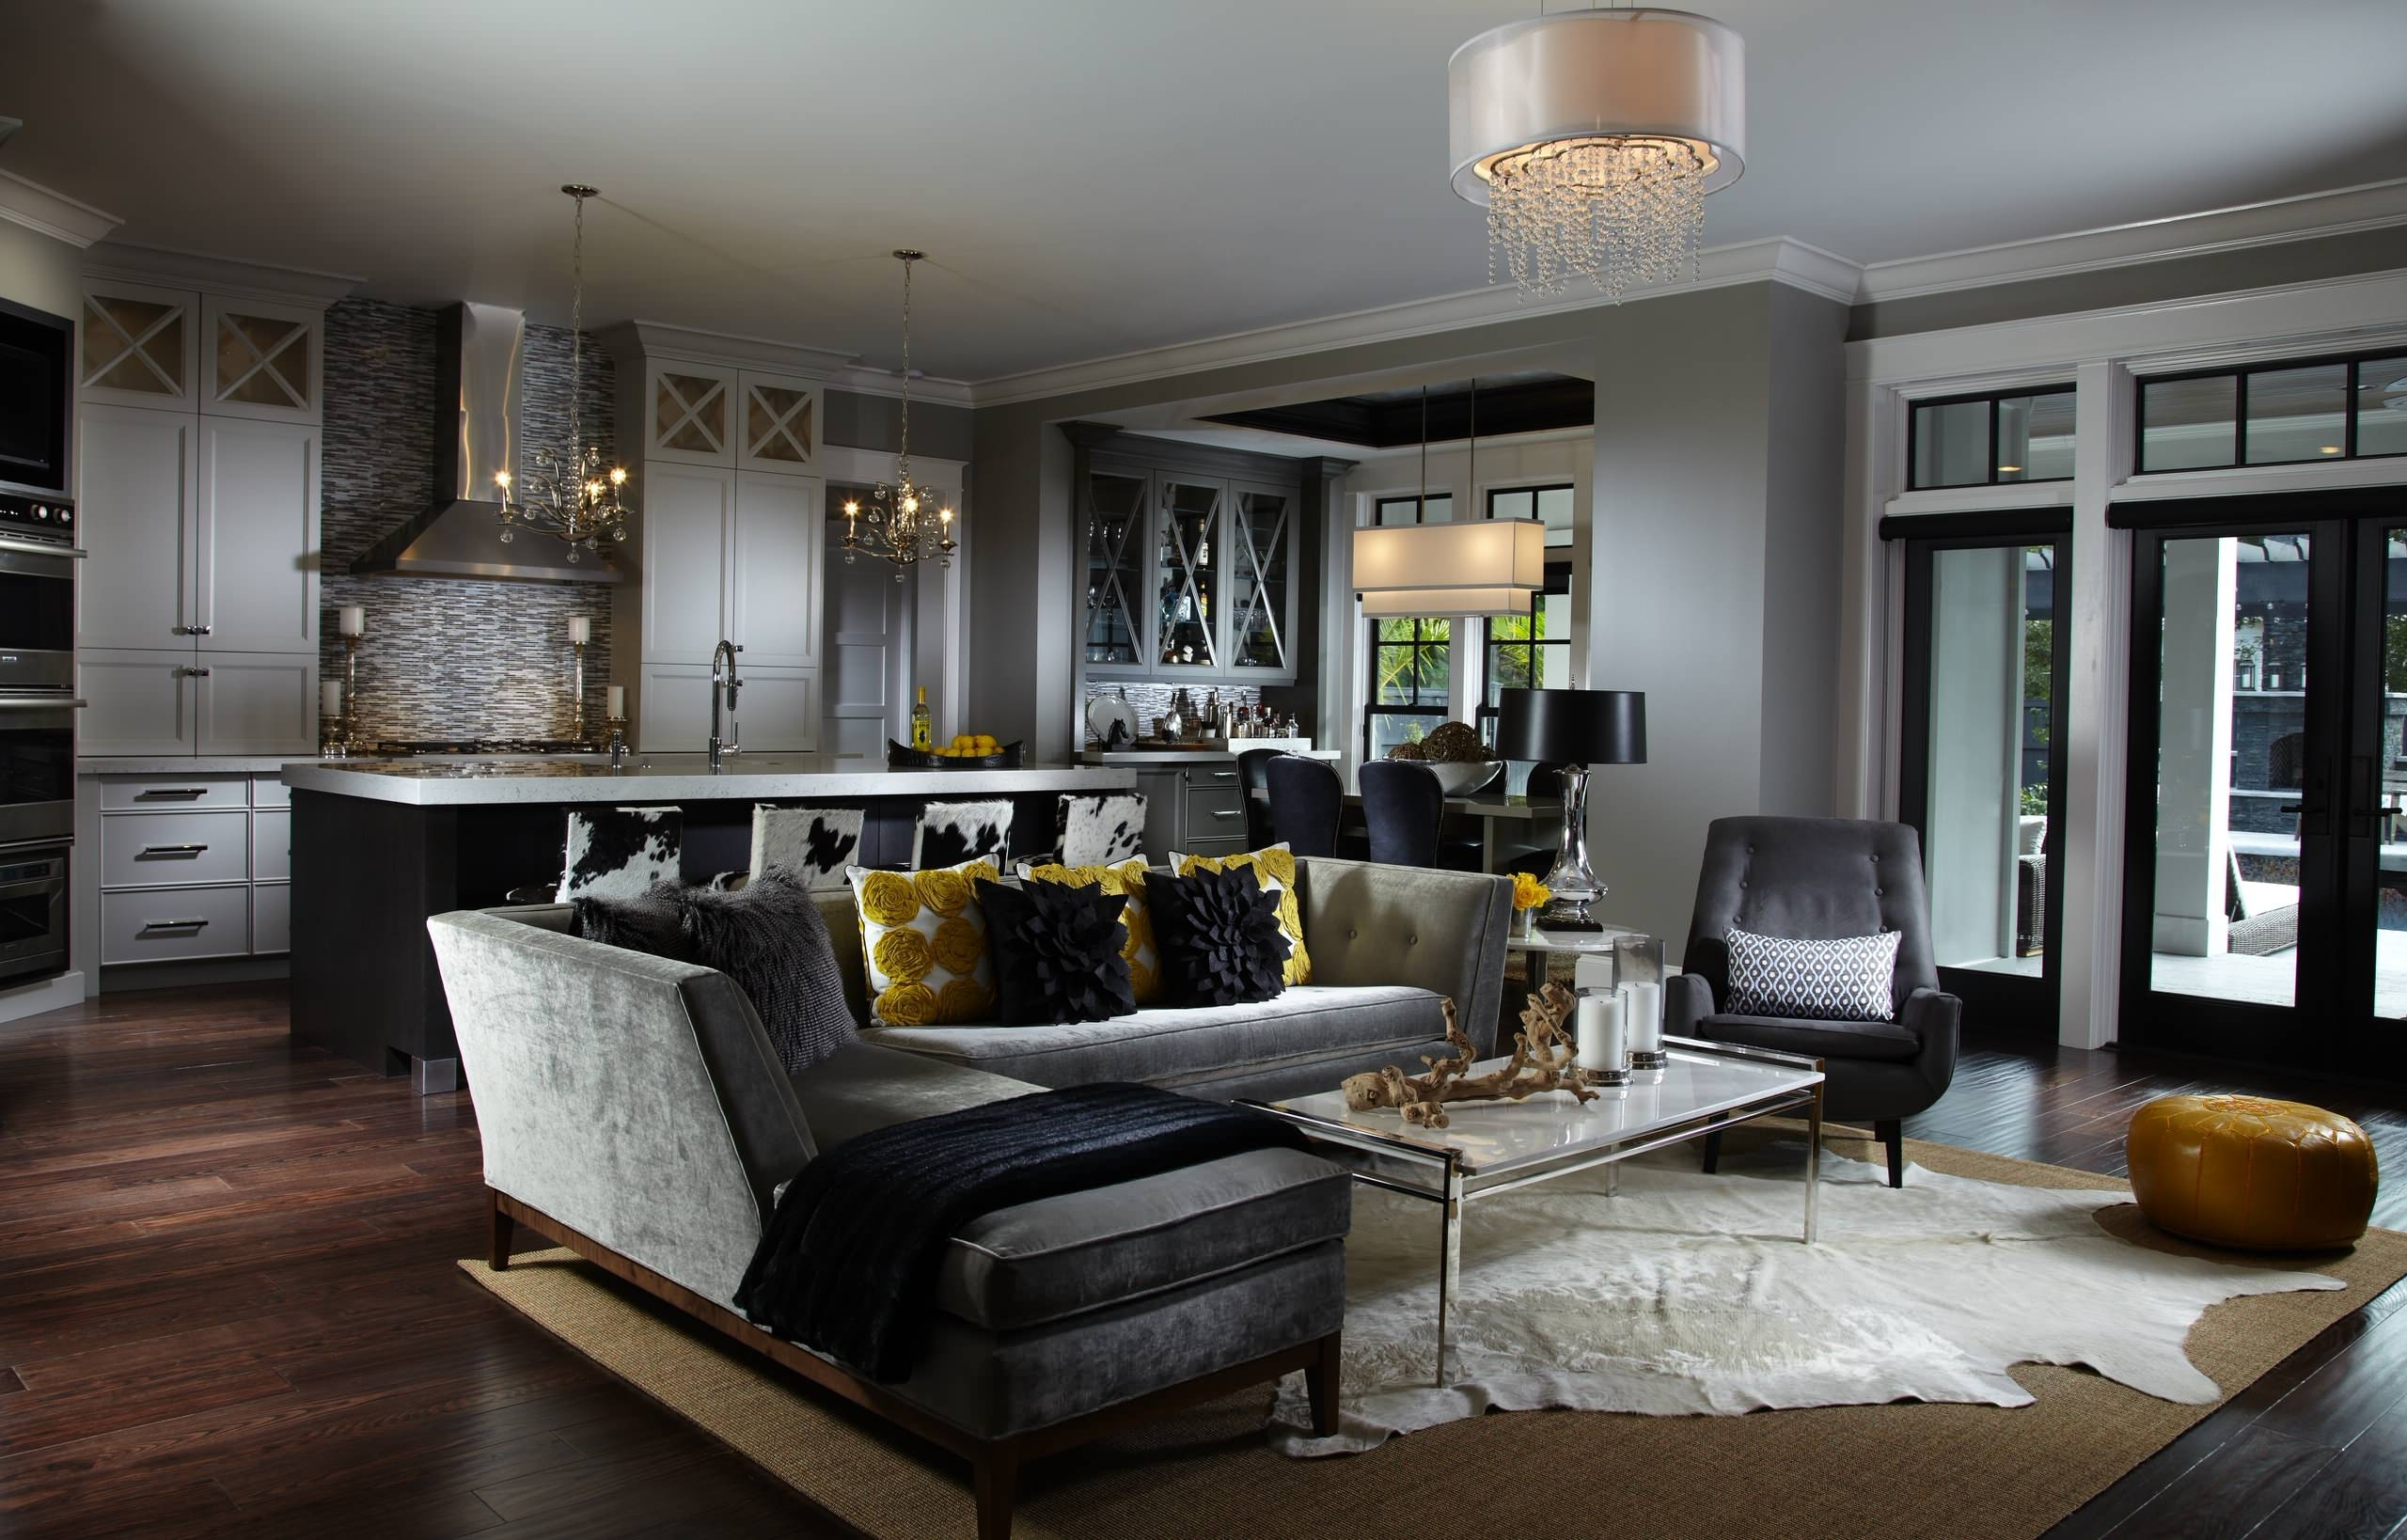 Black Leather Sofa Ideas | Houzz Living Room Decorating Black Leather Couch